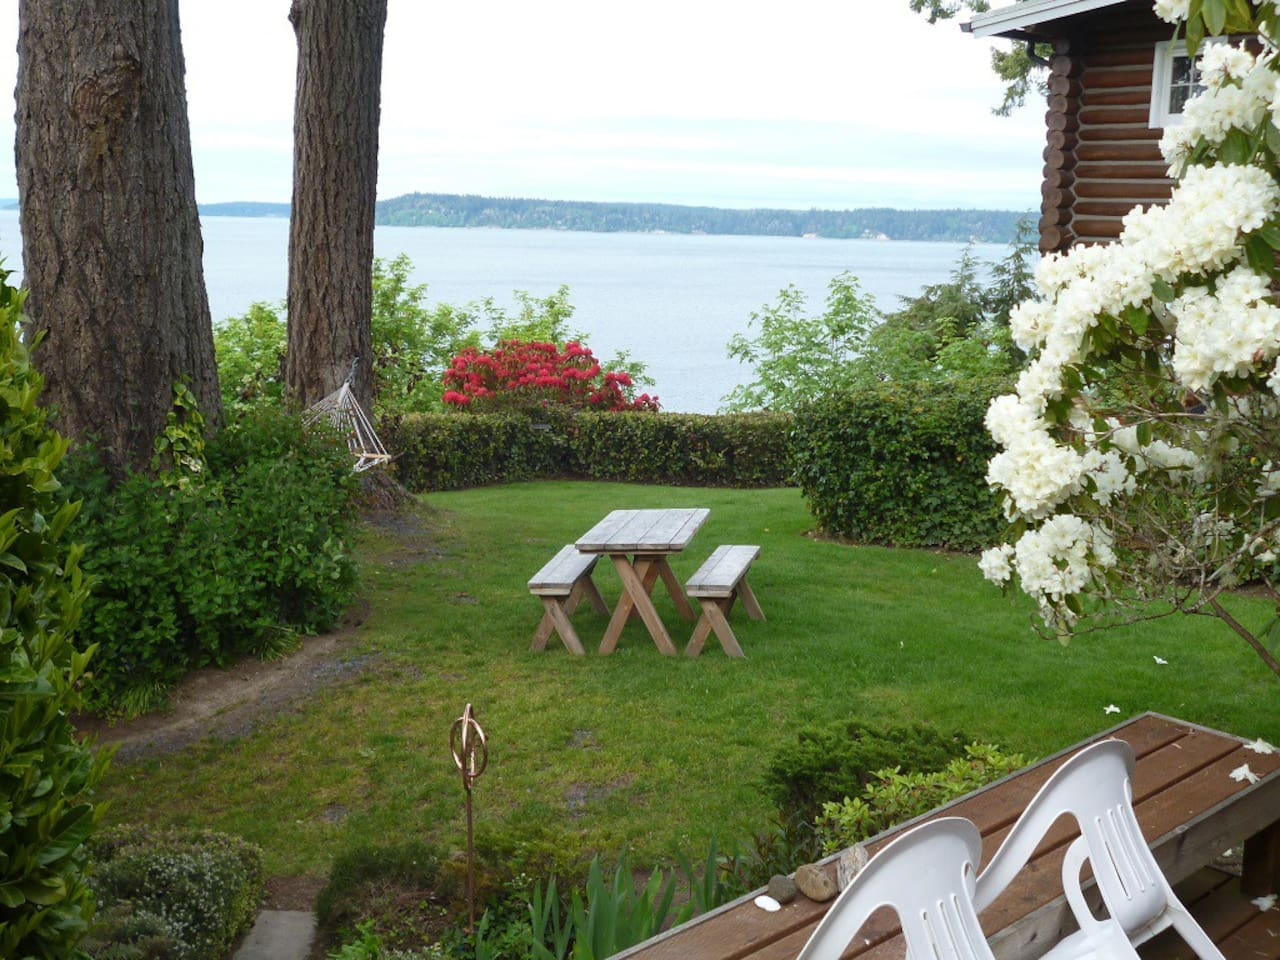 Classic Puget Sound setting amid tall firs and rhododendrons. Puget Sound at your doorstep.